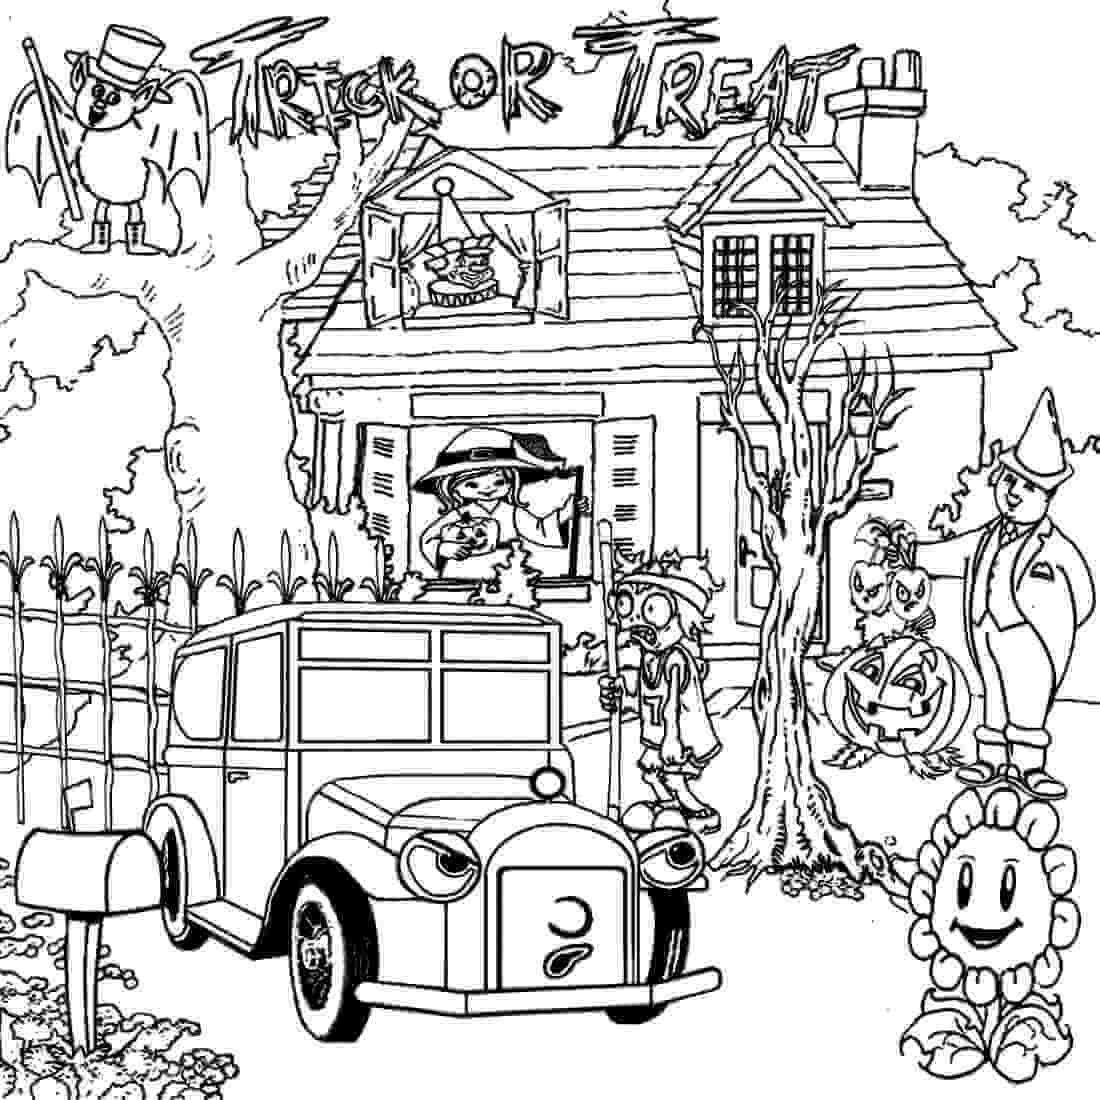 halloween house coloring page halloween coloring pages haunted house part 4 halloween page house coloring